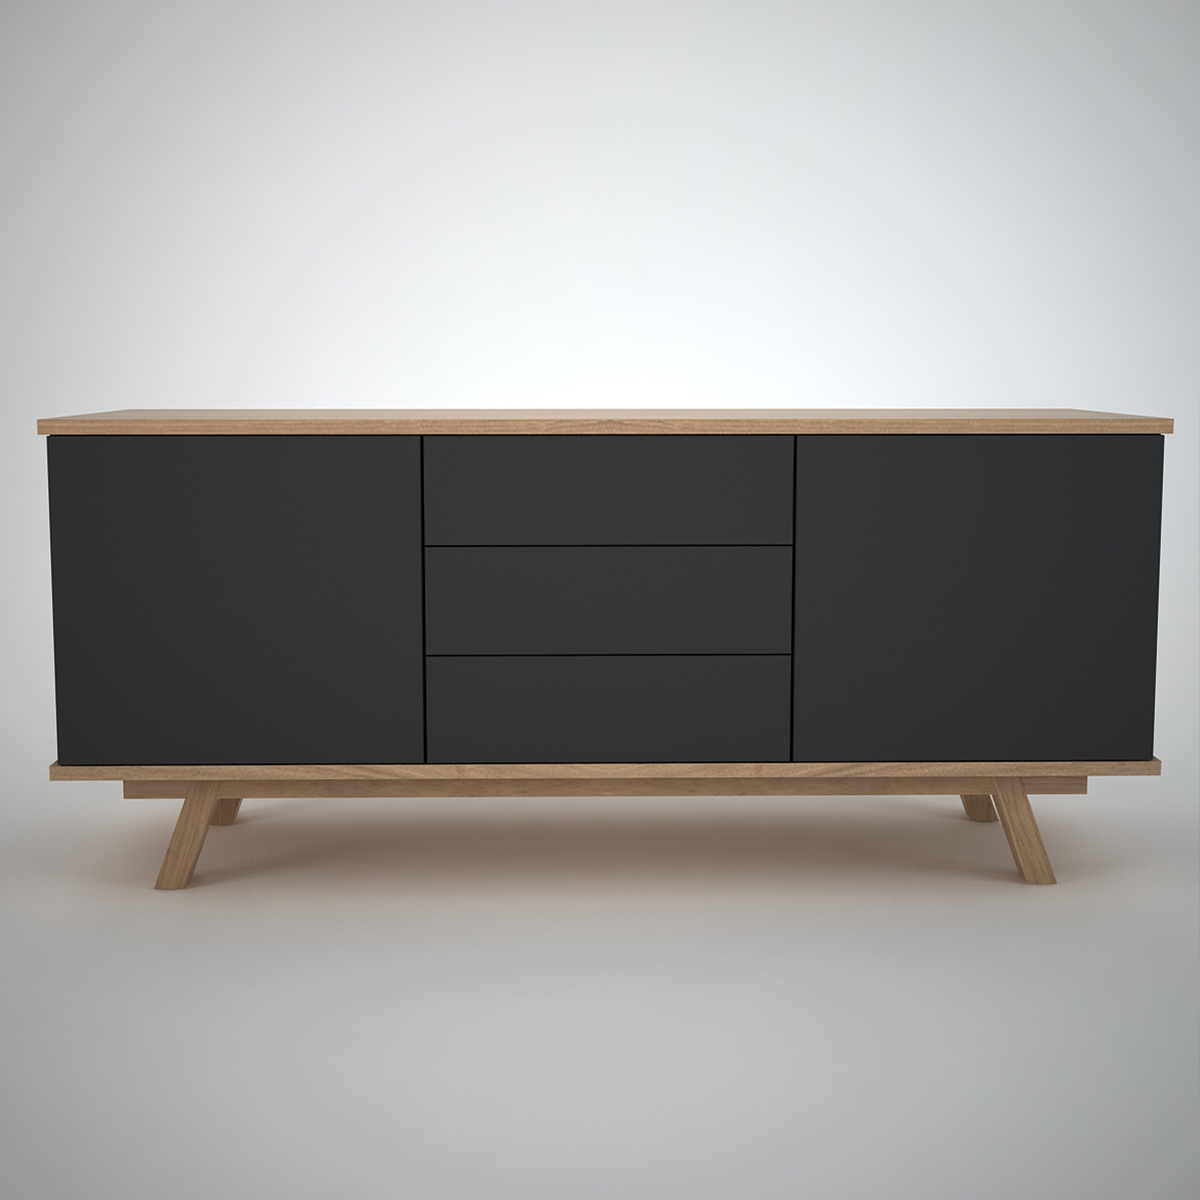 ottawa sideboard 2 3 anthracite join furniture. Black Bedroom Furniture Sets. Home Design Ideas